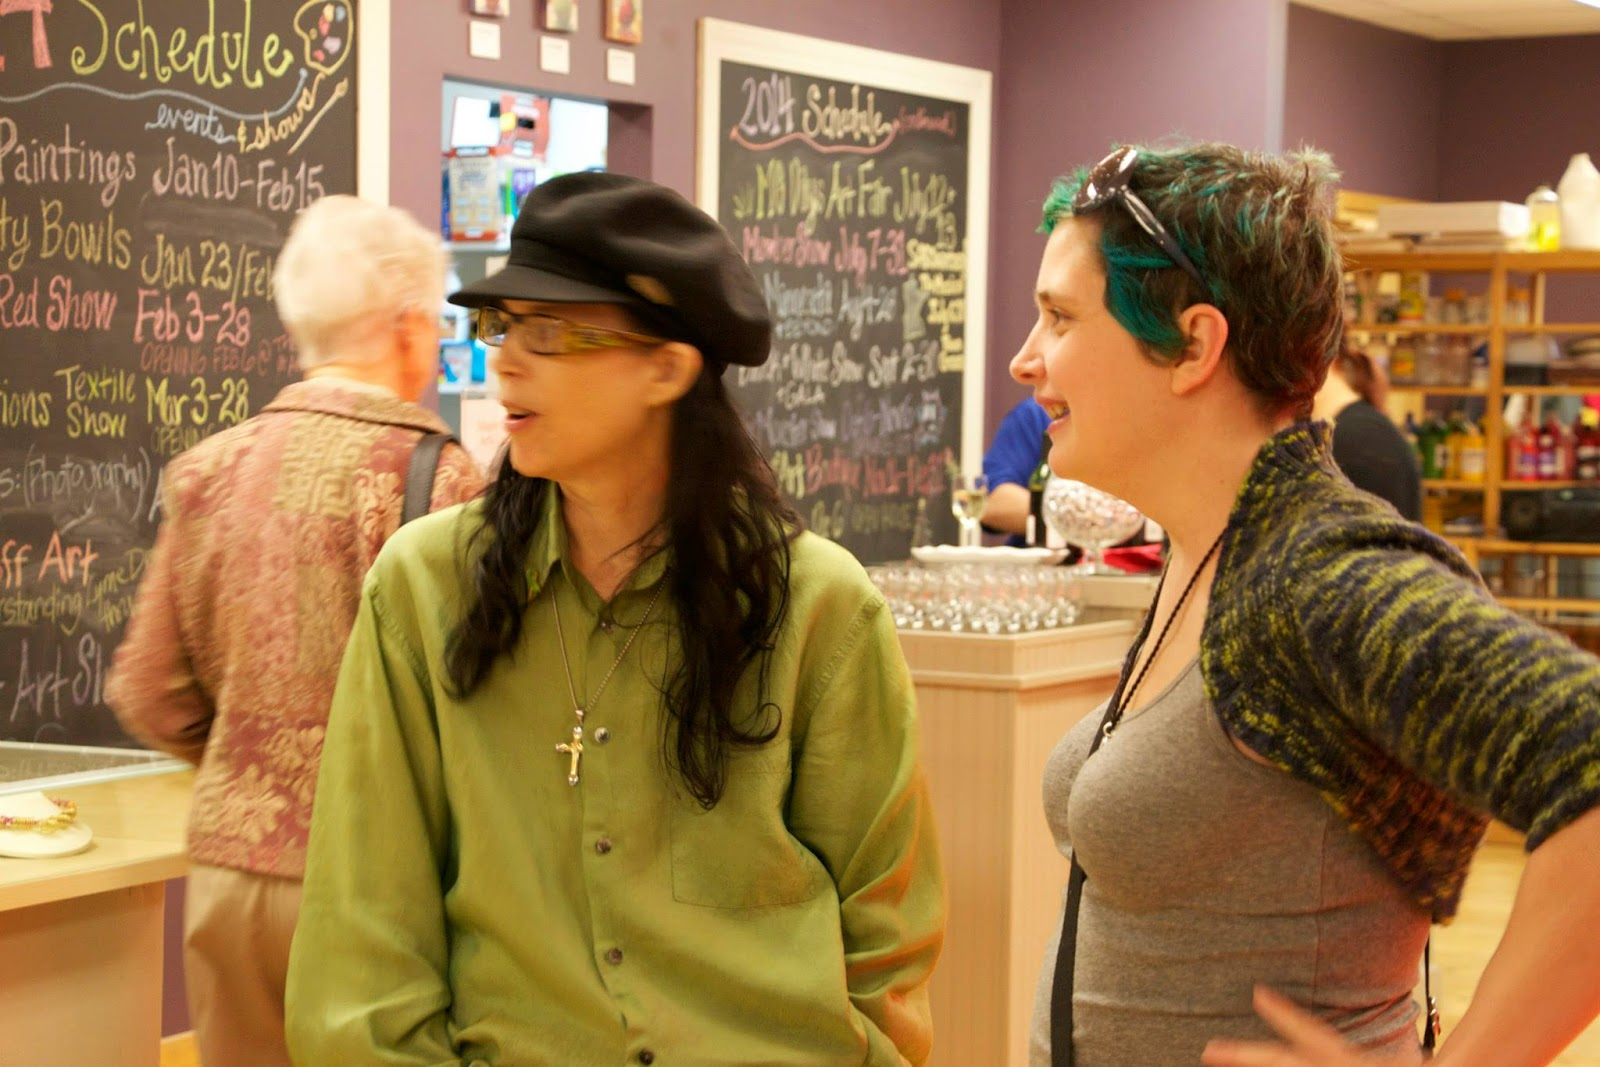 Vicki with a friend at the Minnesota Lyme Art Show